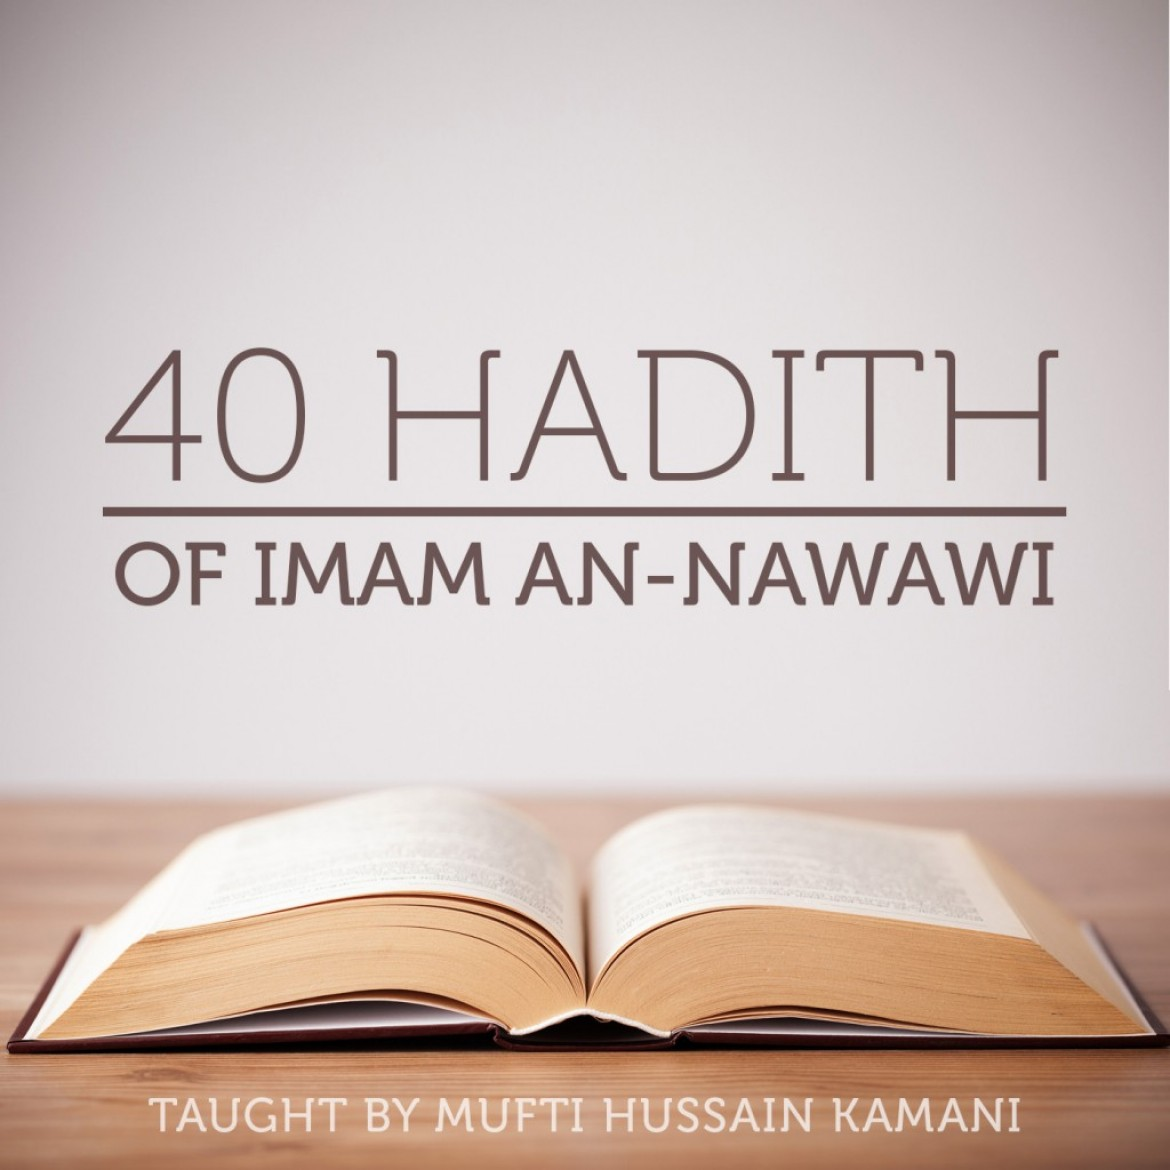 40 Ahadith of Imam Nawawi – Hadith 23: Purity is half of Imaan